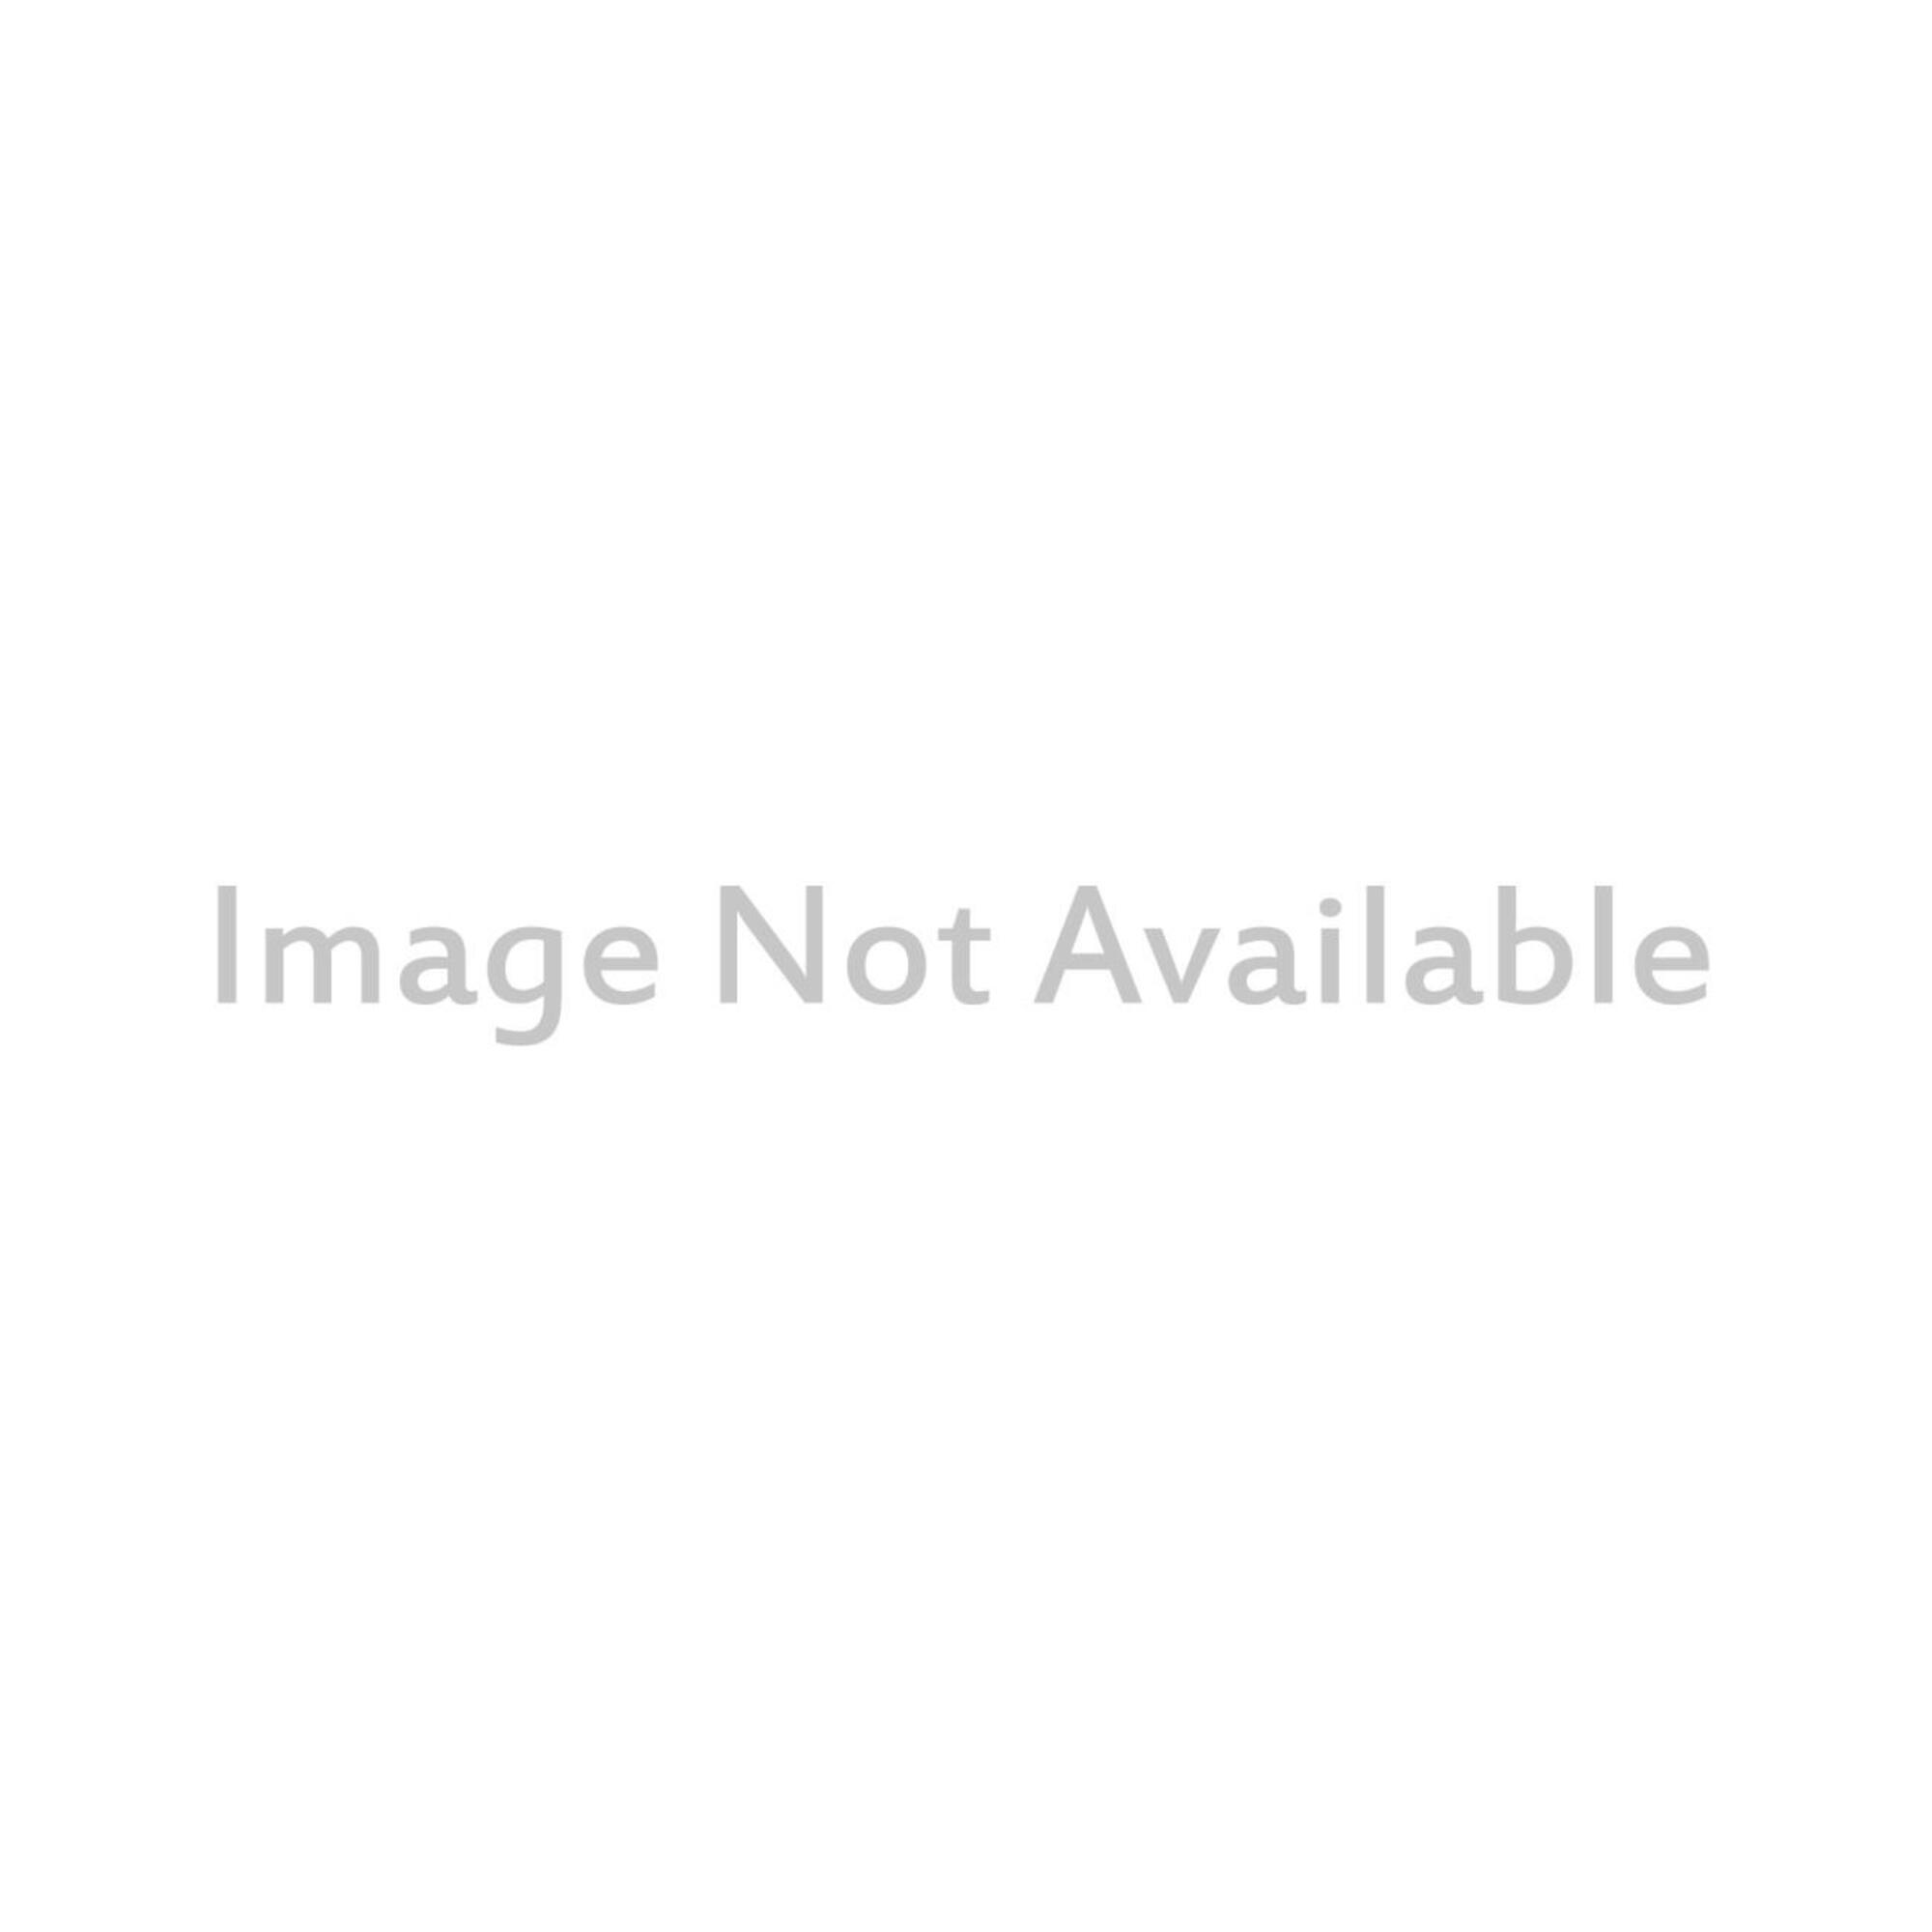 750VA Smart-UPS Sine Wave UPS Battery Backup with Extended Run Option APC UPS SMX750 Line-Interactive 2U Rack//Tower Convertible 120V